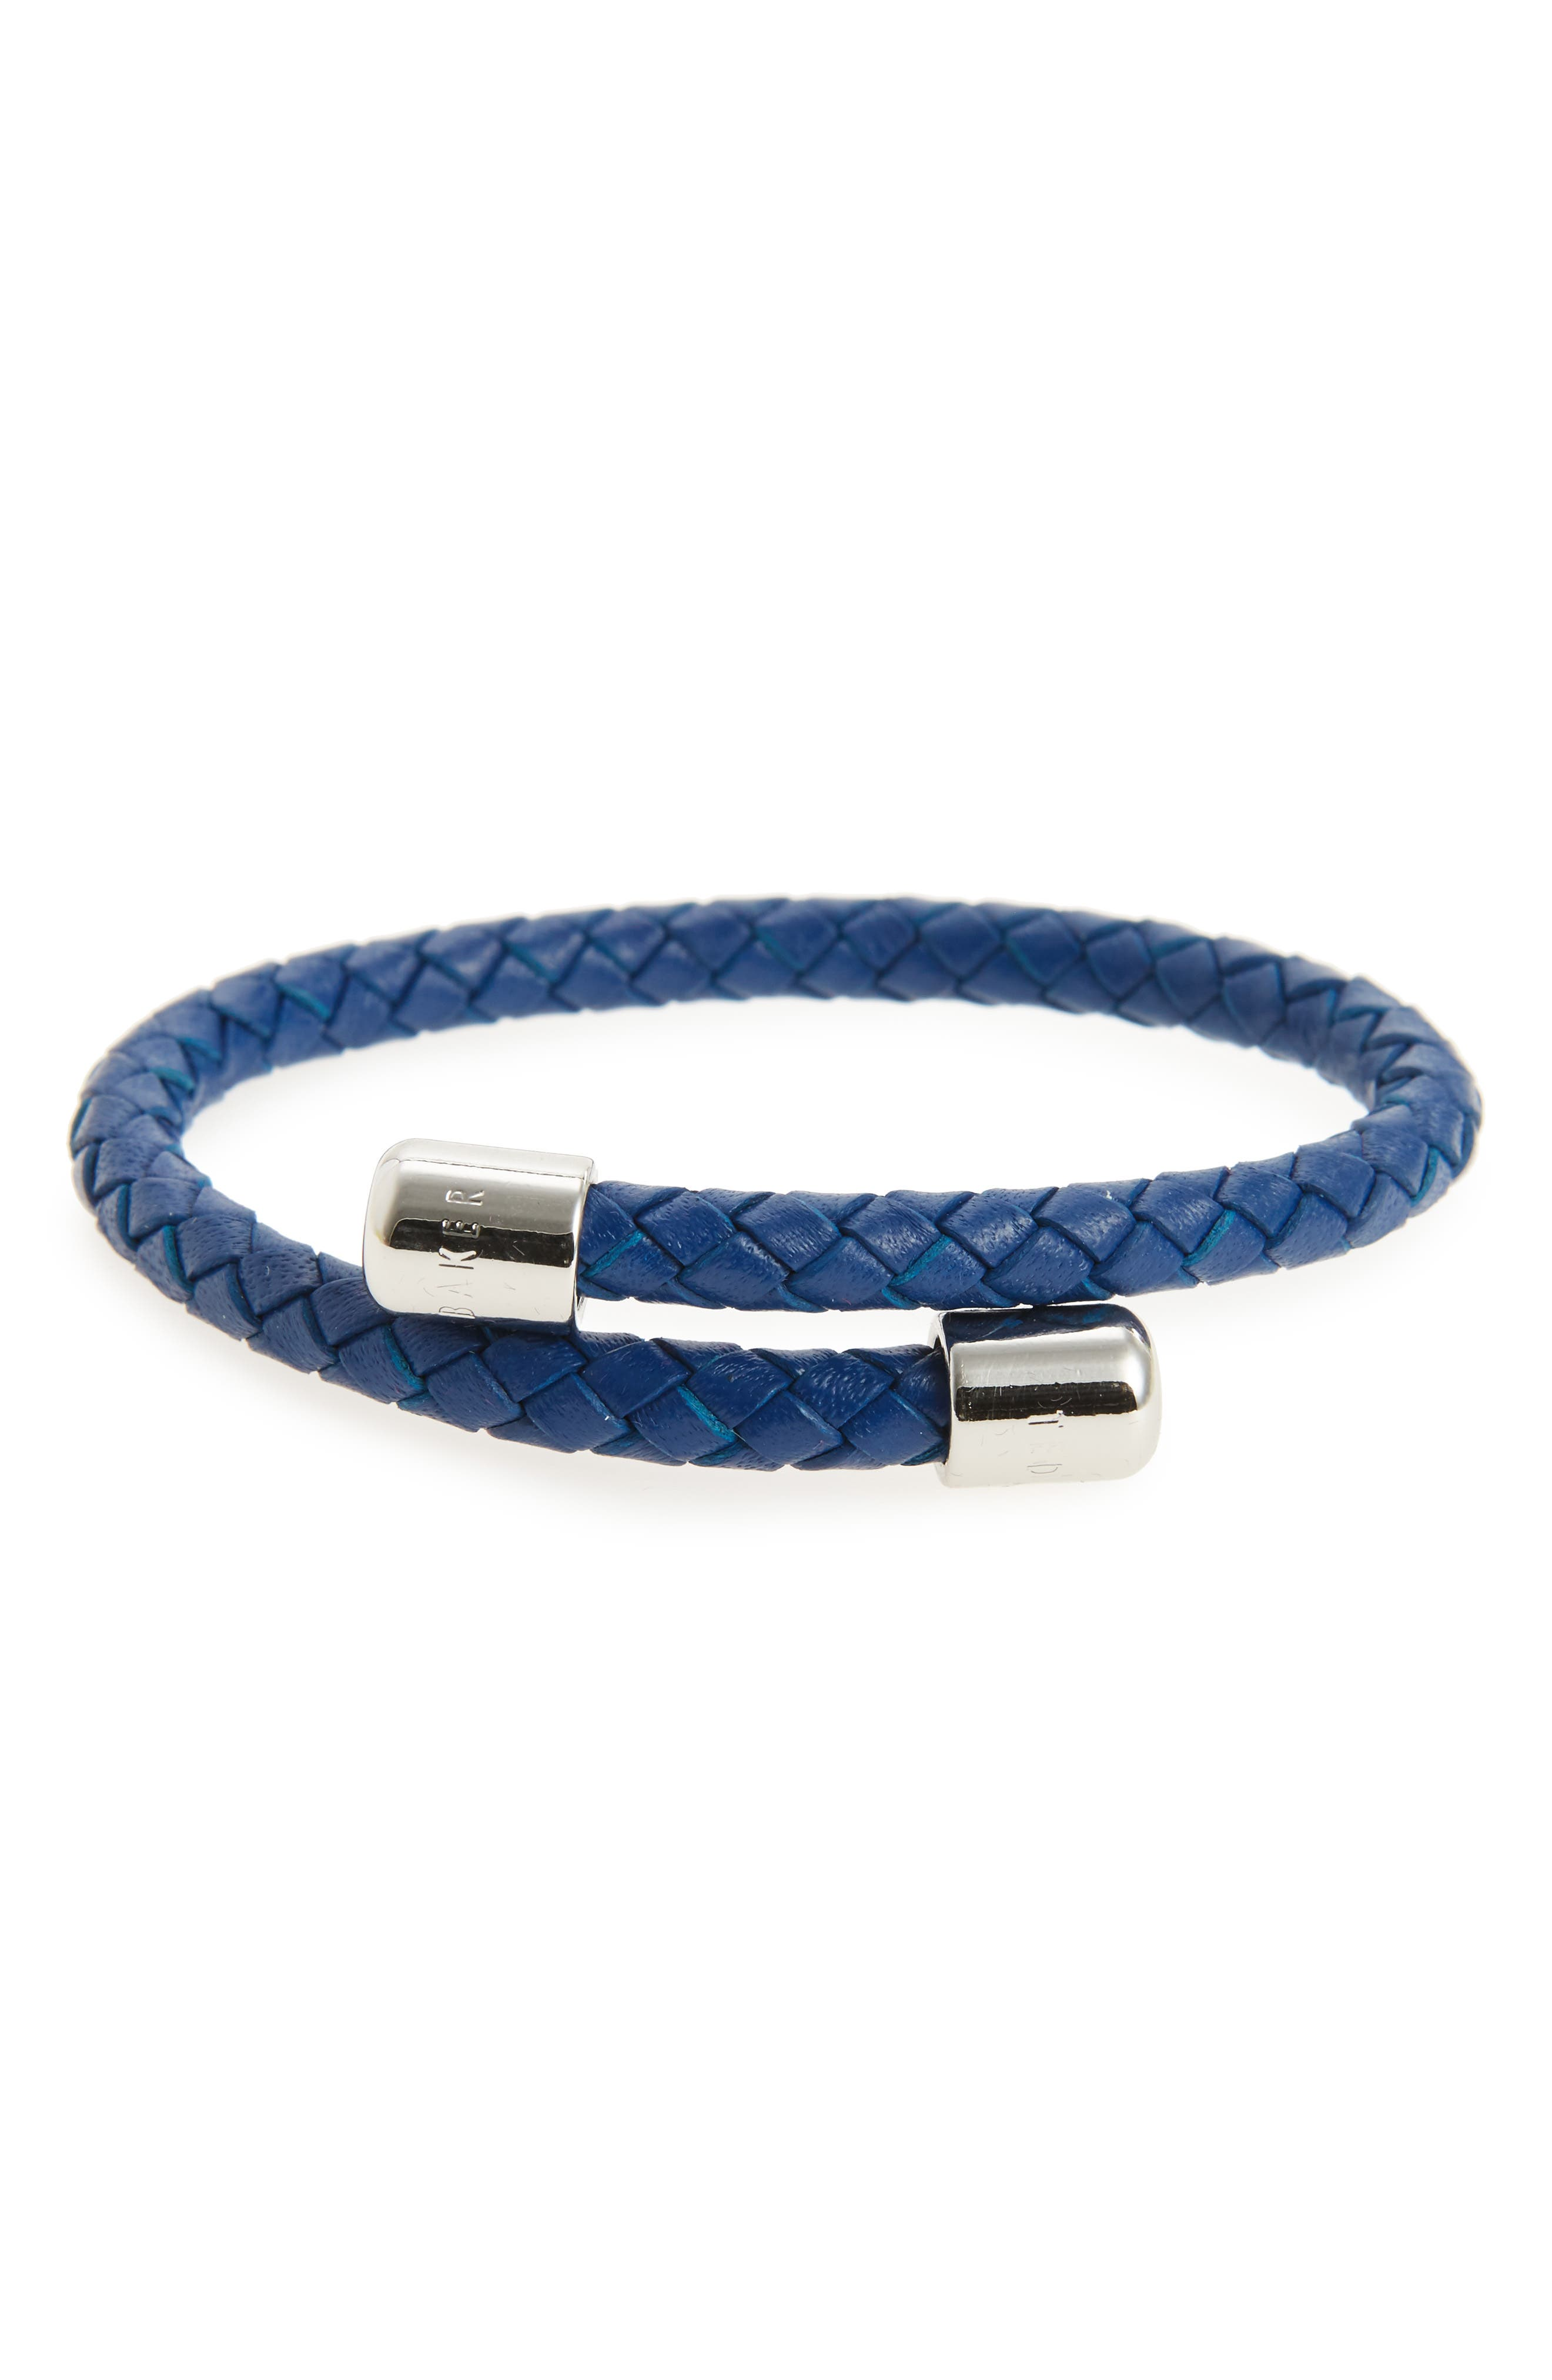 Alternate Image 1 Selected - Ted Baker London Bassett Braided Leather Bracelet